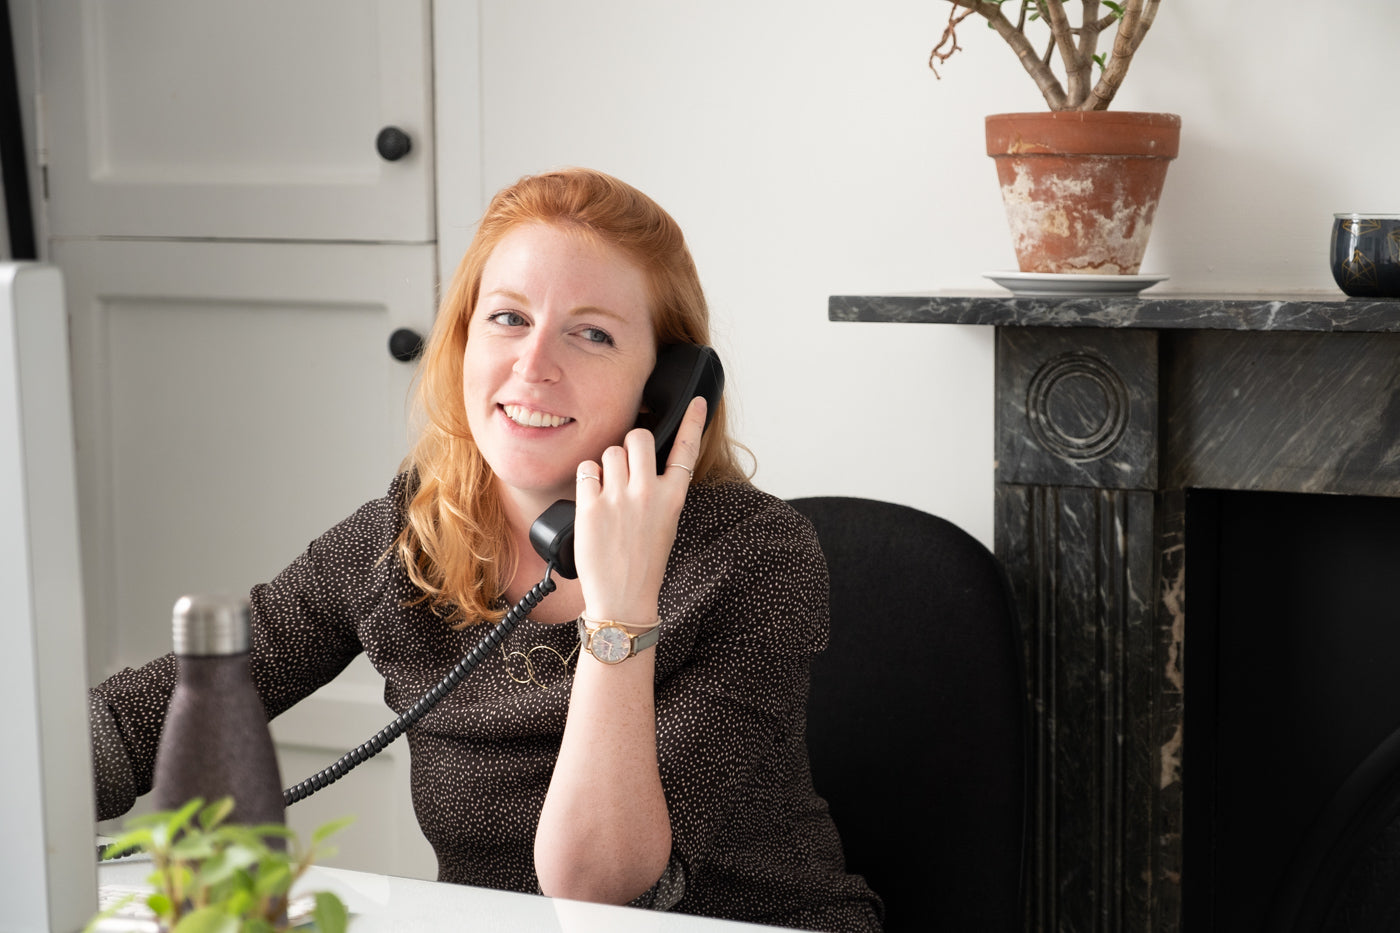 Lady_with_red_hair_smiling_on_the_telephone.jpg